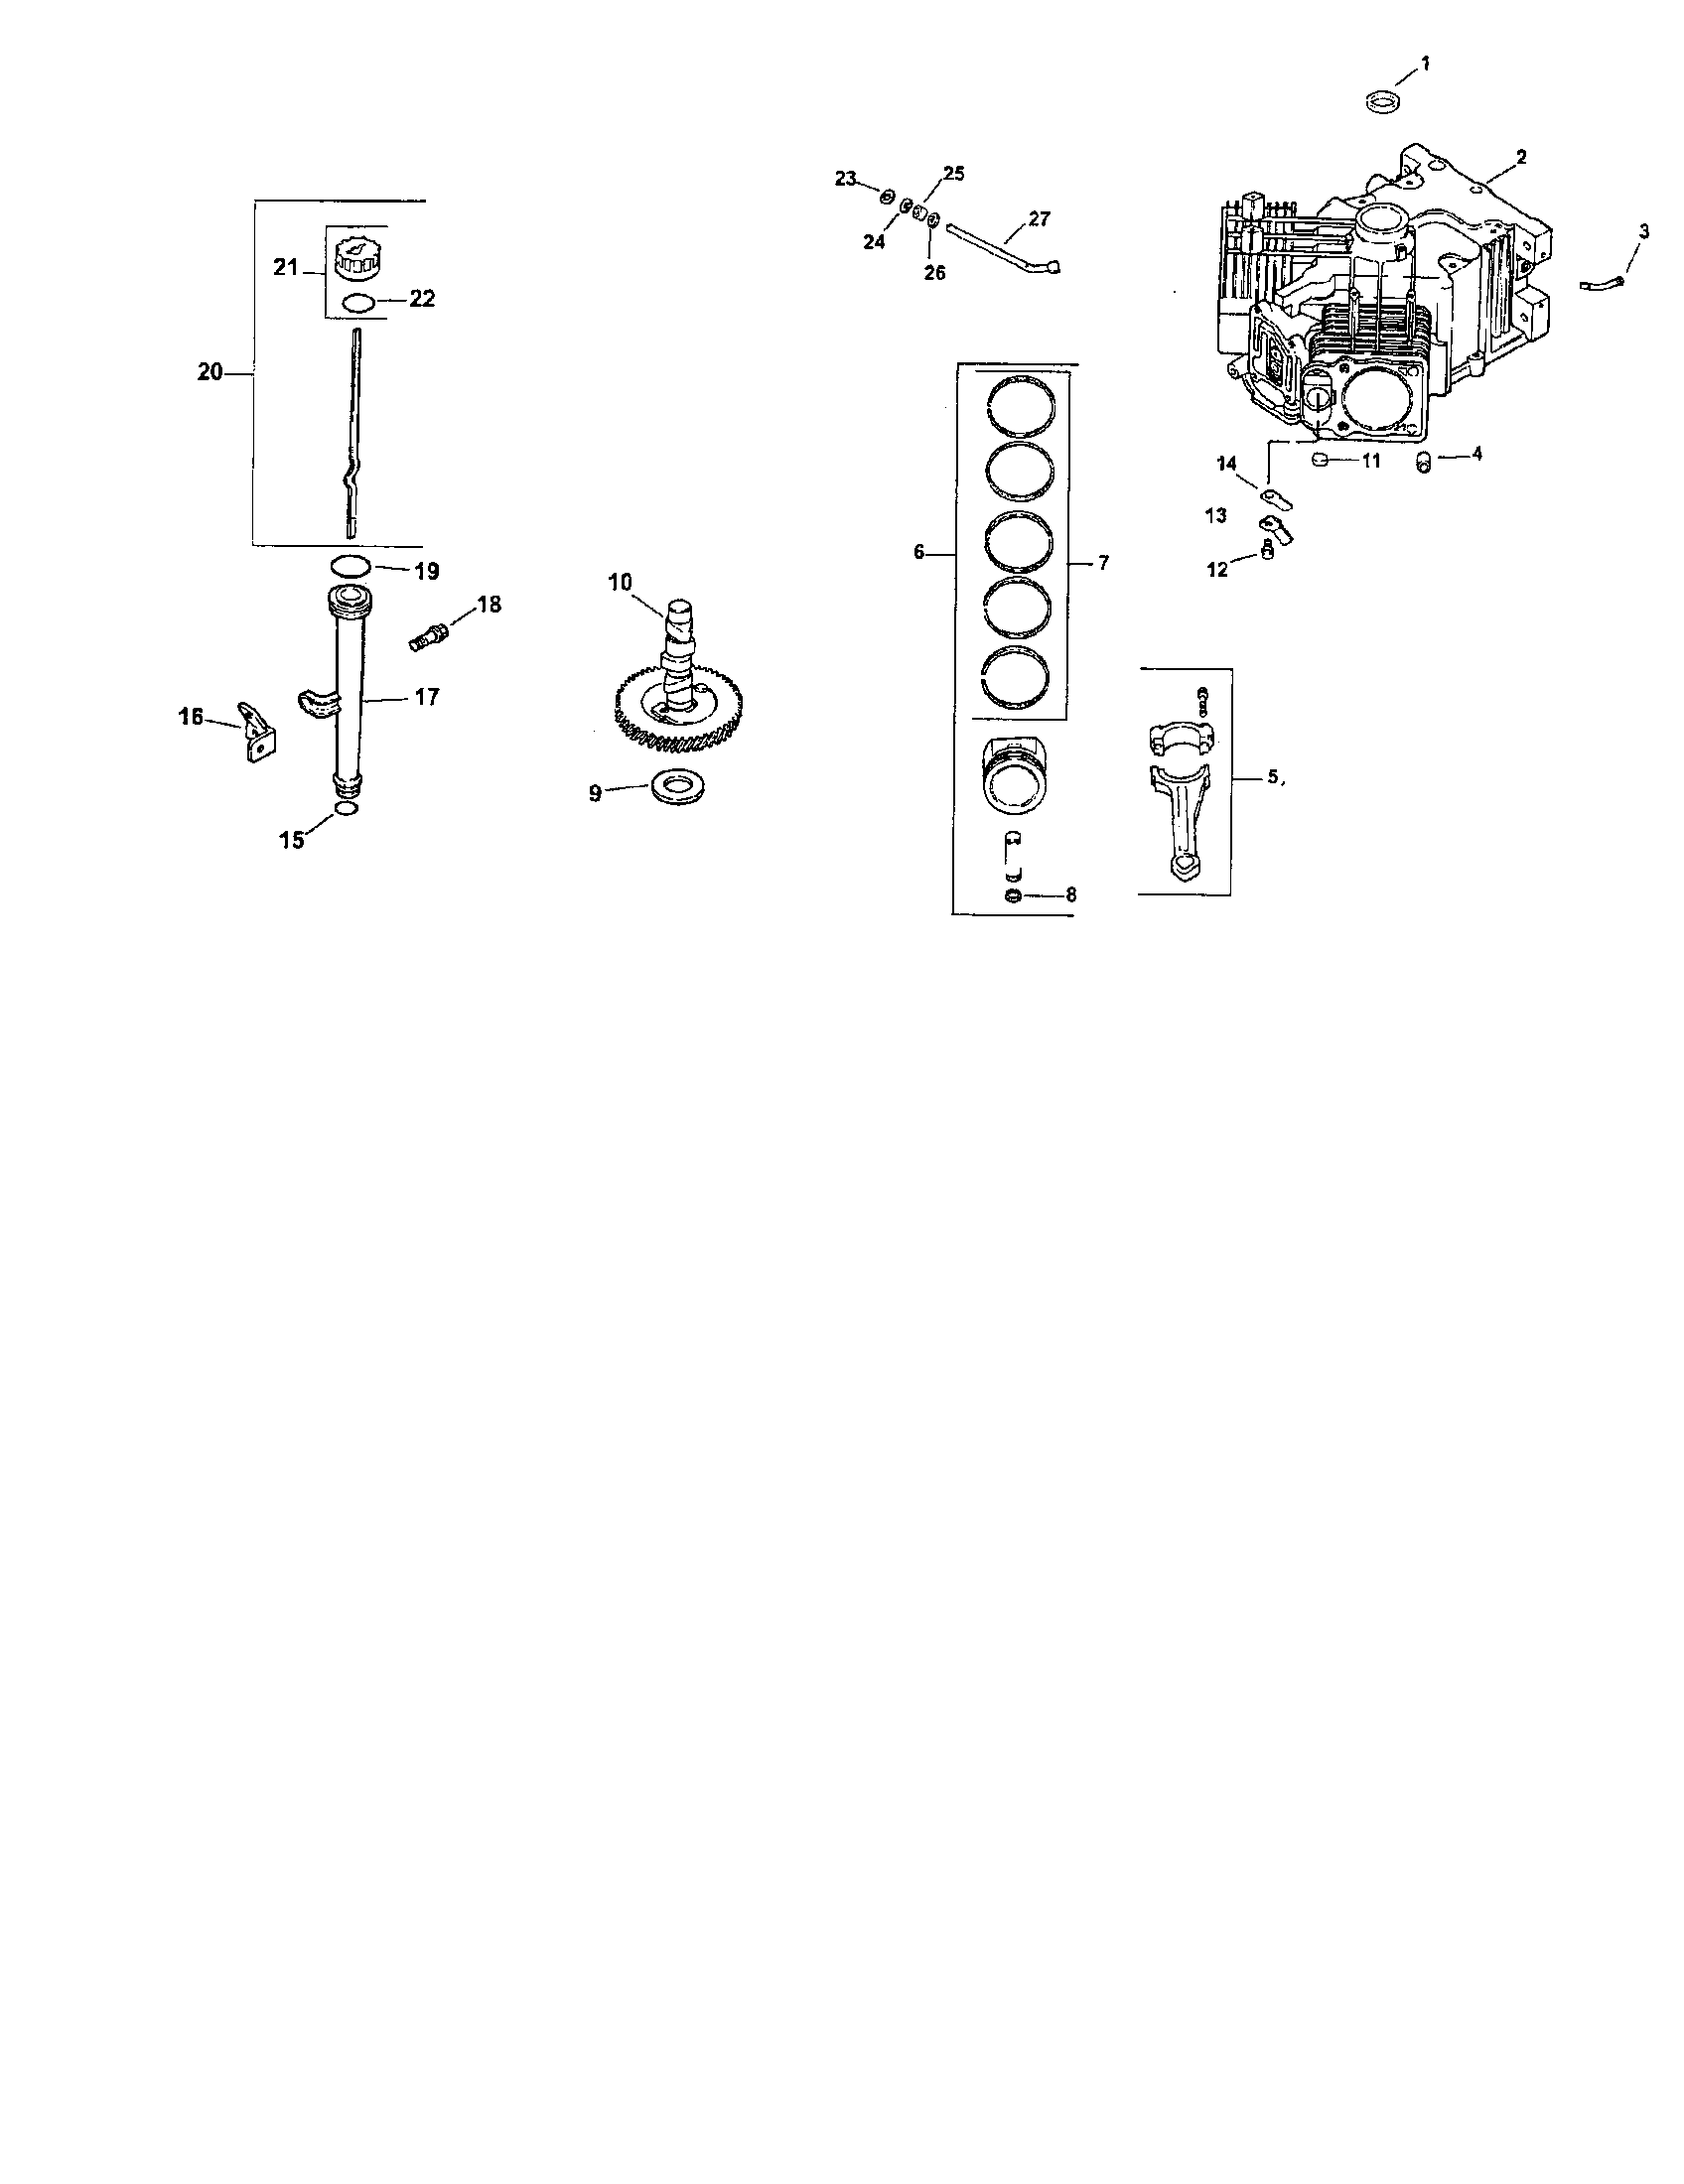 Kohler model CV730-0029 engine genuine parts